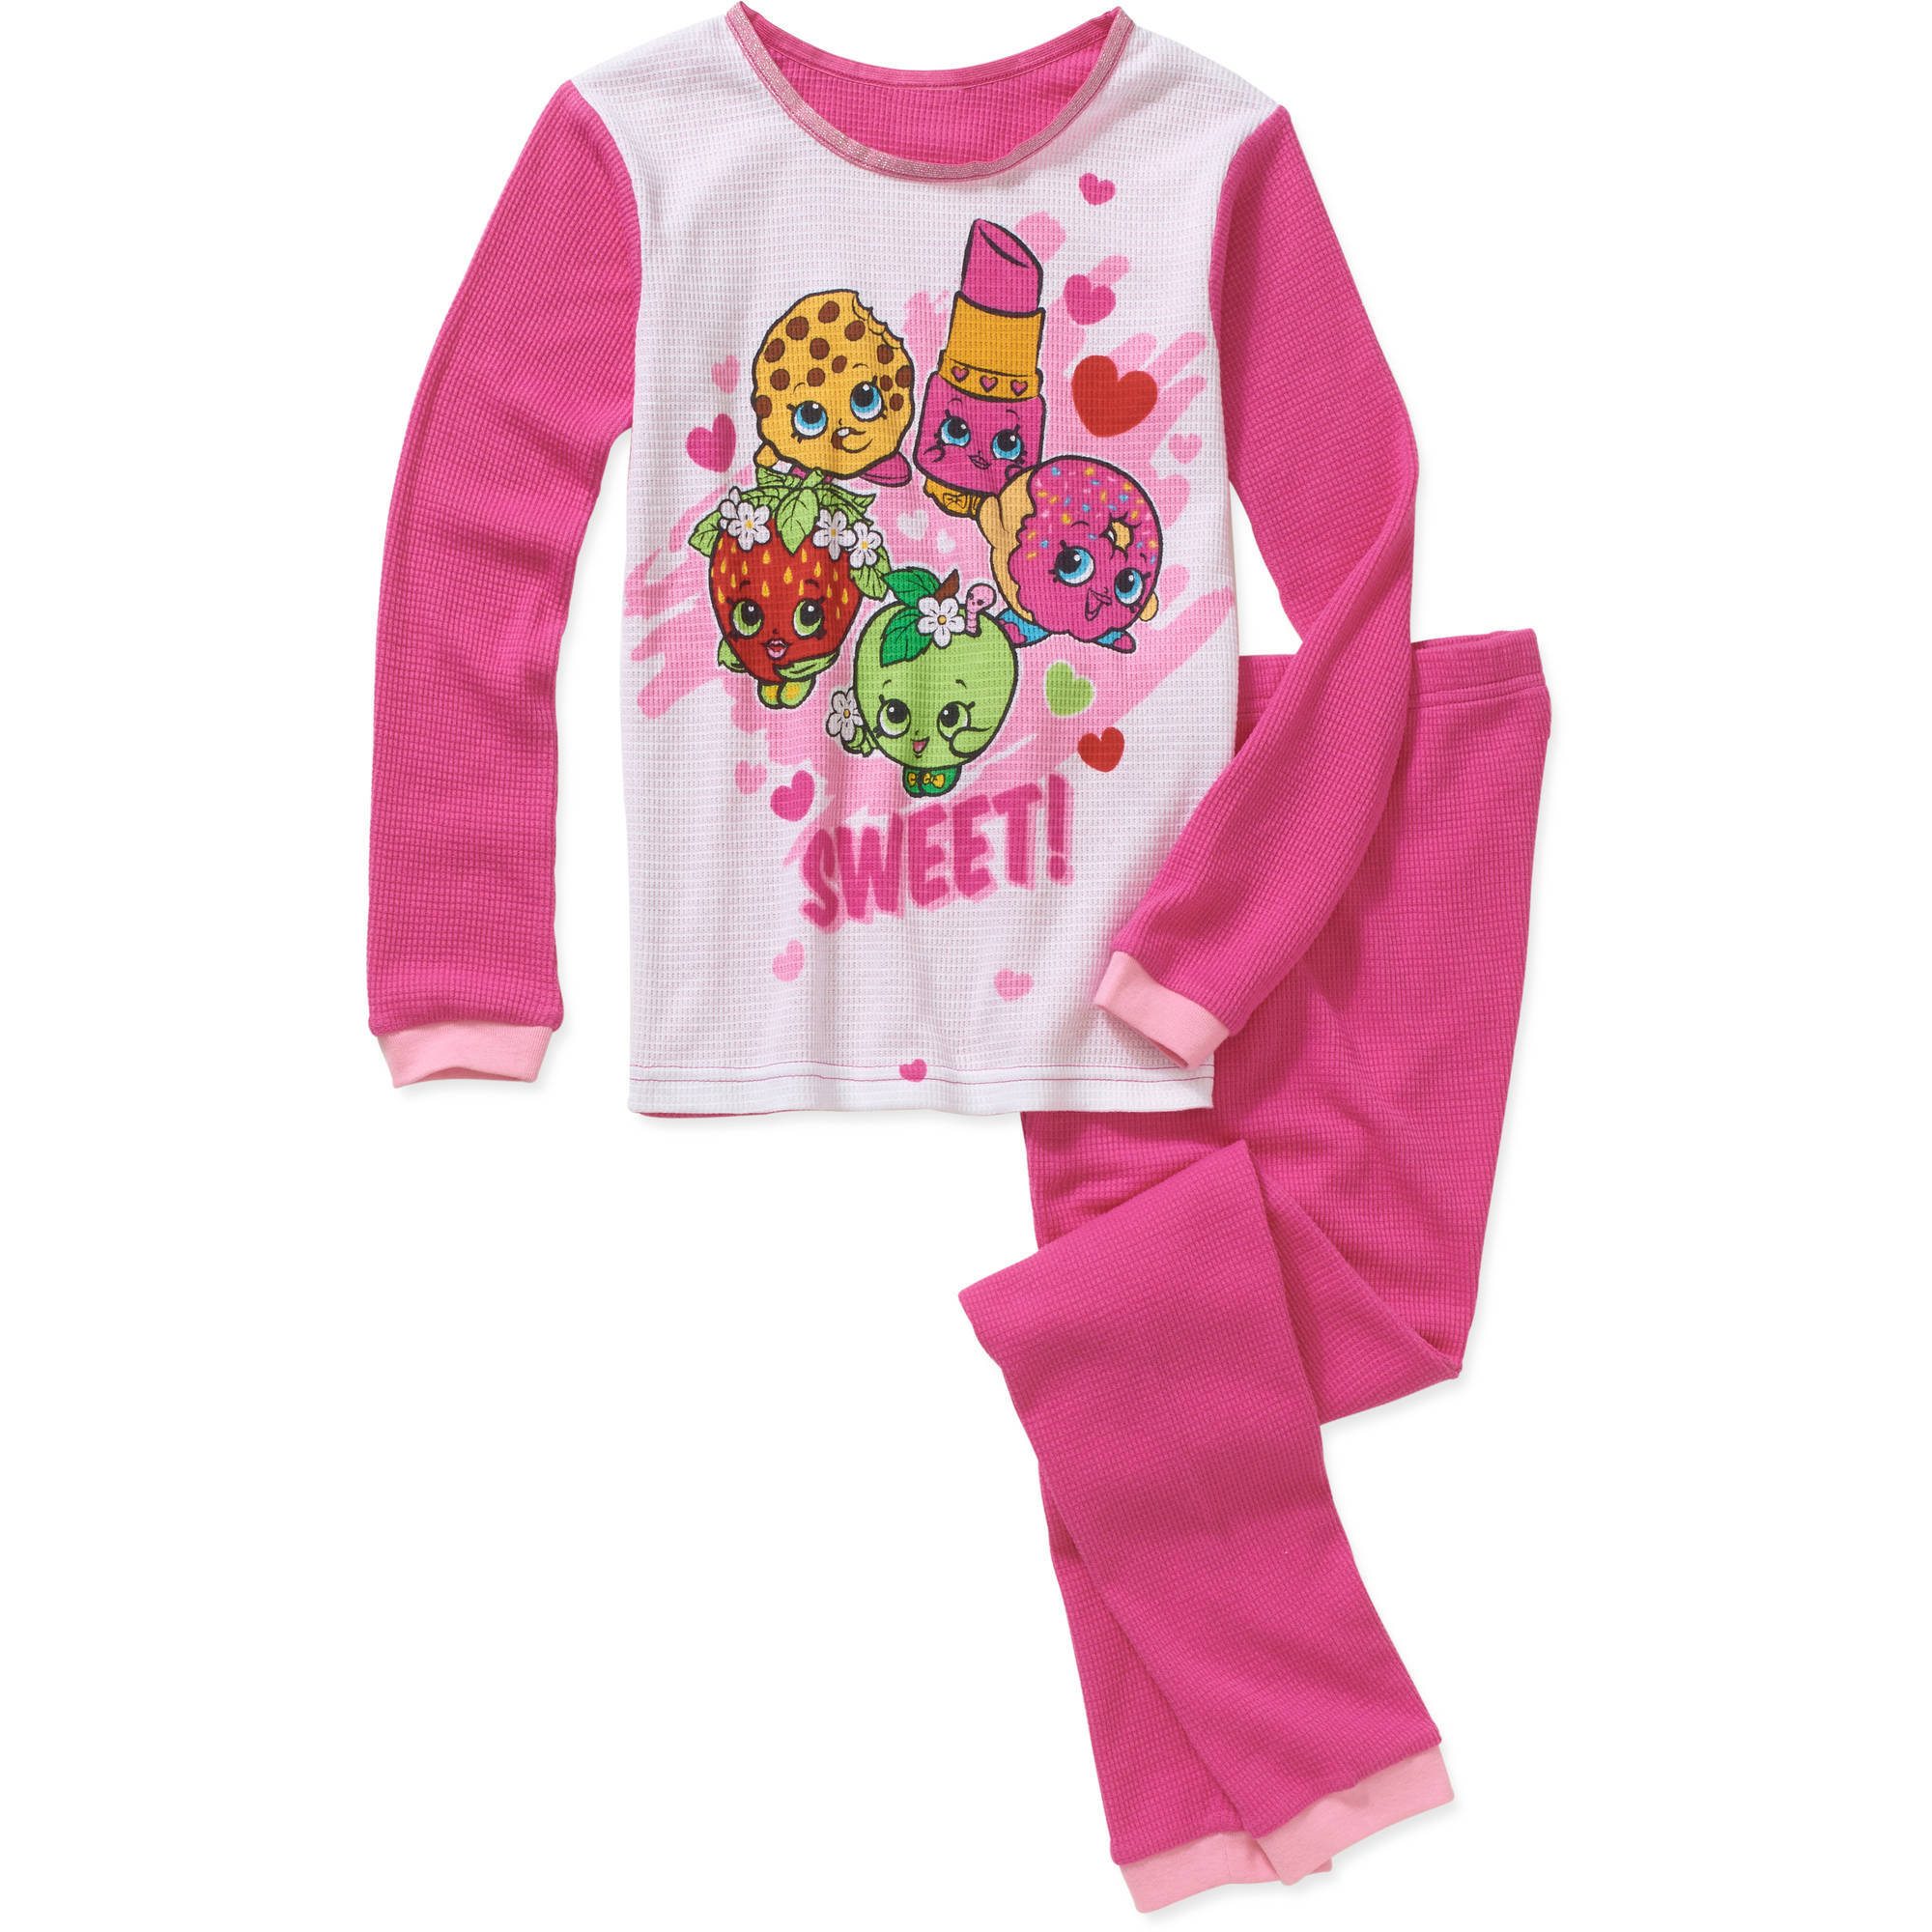 Girls' Licensed Cotton Thermal 2 Piece Set